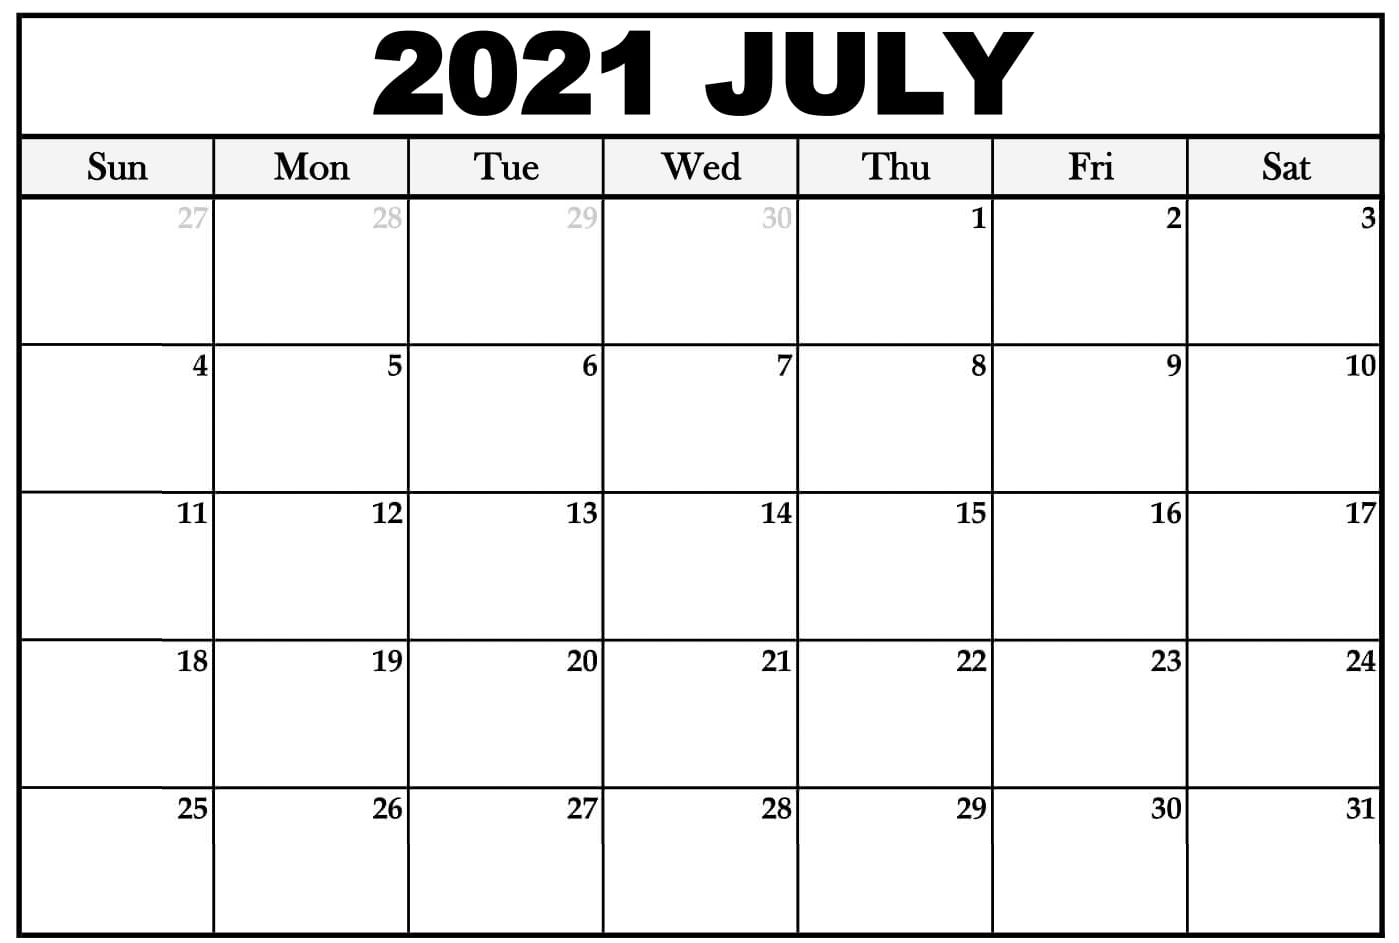 July 2021 Holidays For Singapore